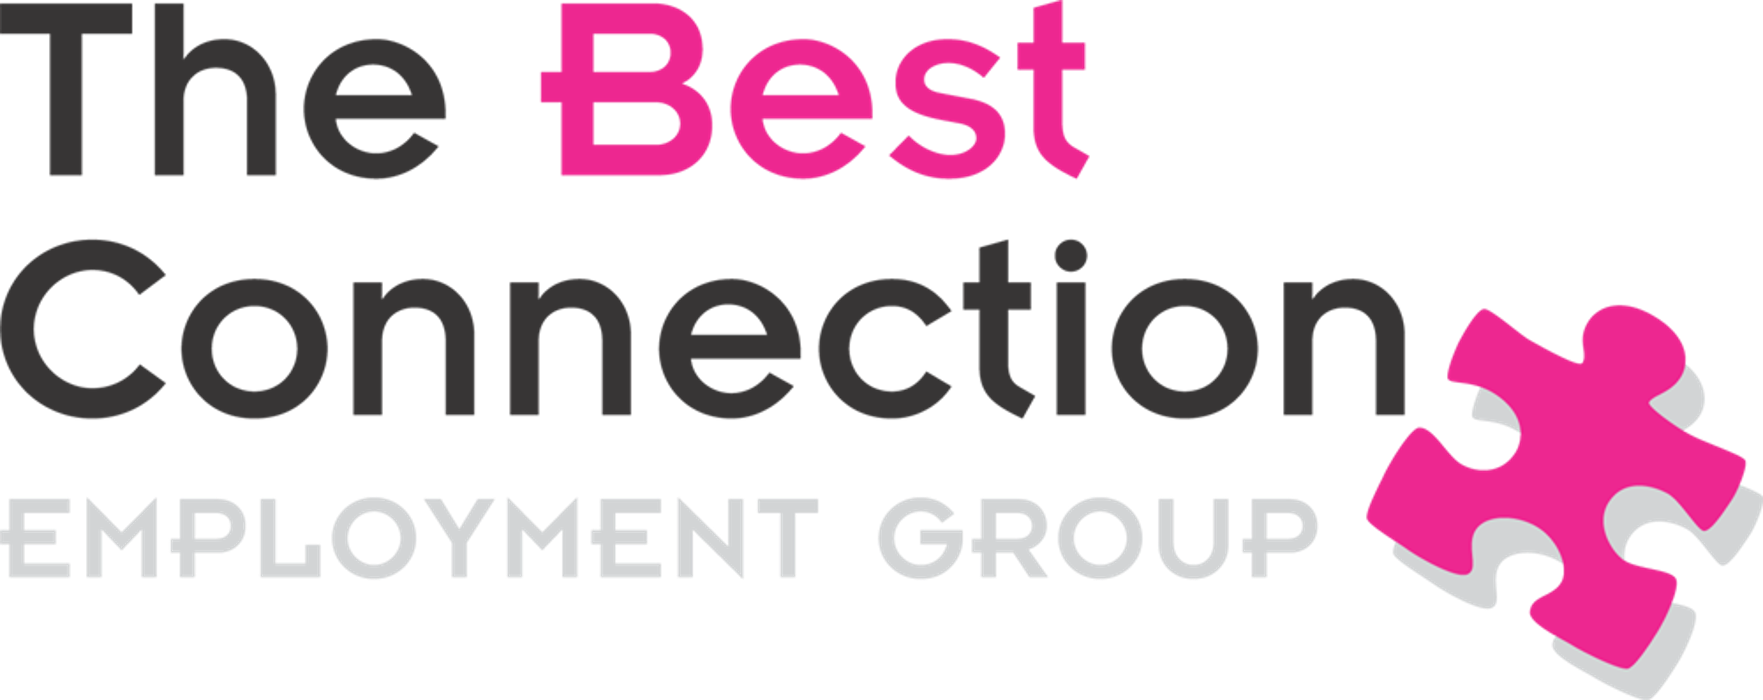 The Best Connection - Maidstone